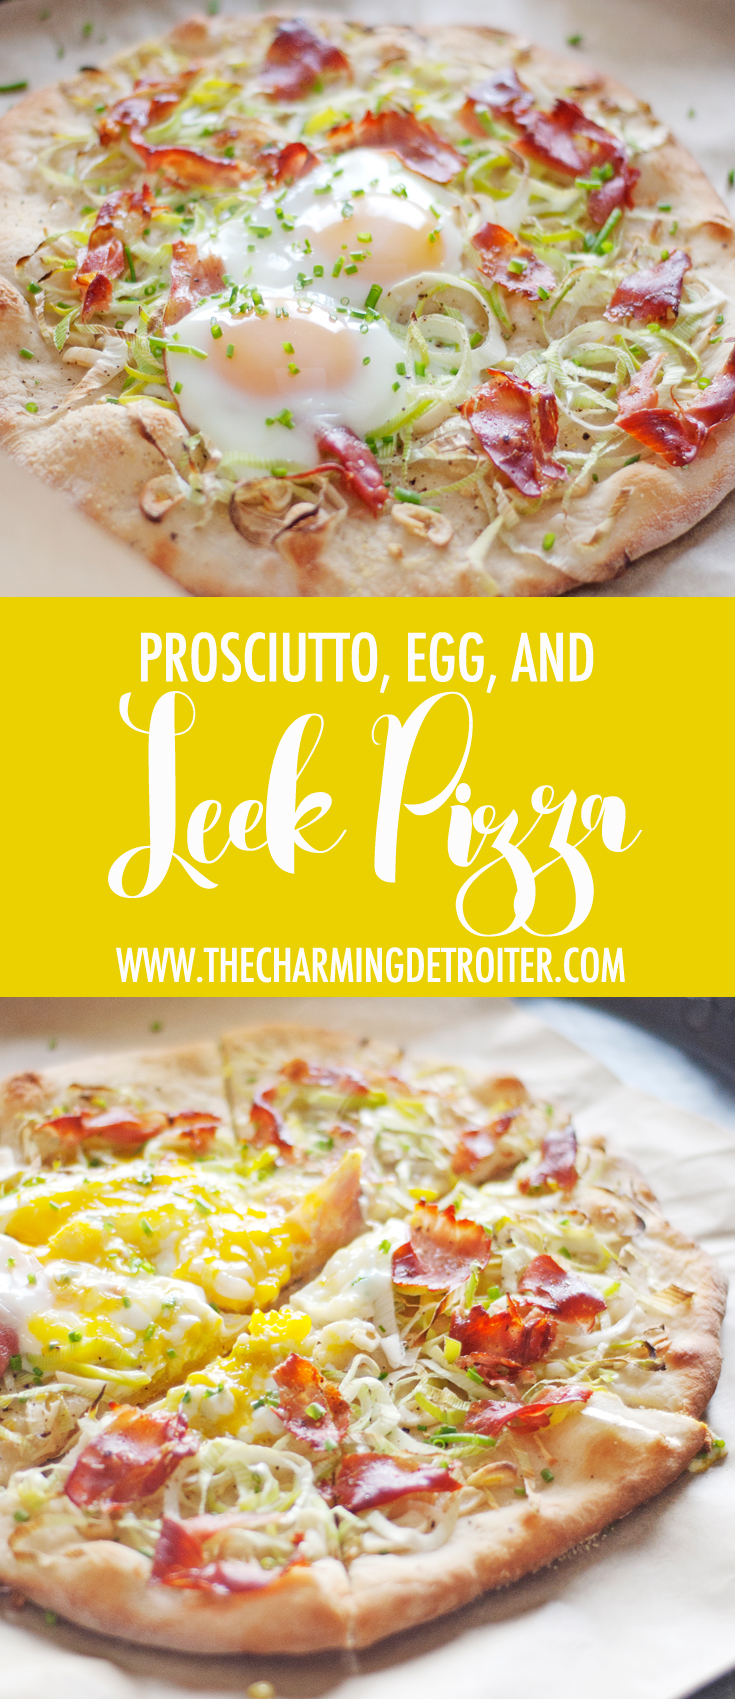 This shaved leek pizza also features prosciutto, garlic, and eggs, and comes together in just 20 minutes - perfect for quick weeknight meals!